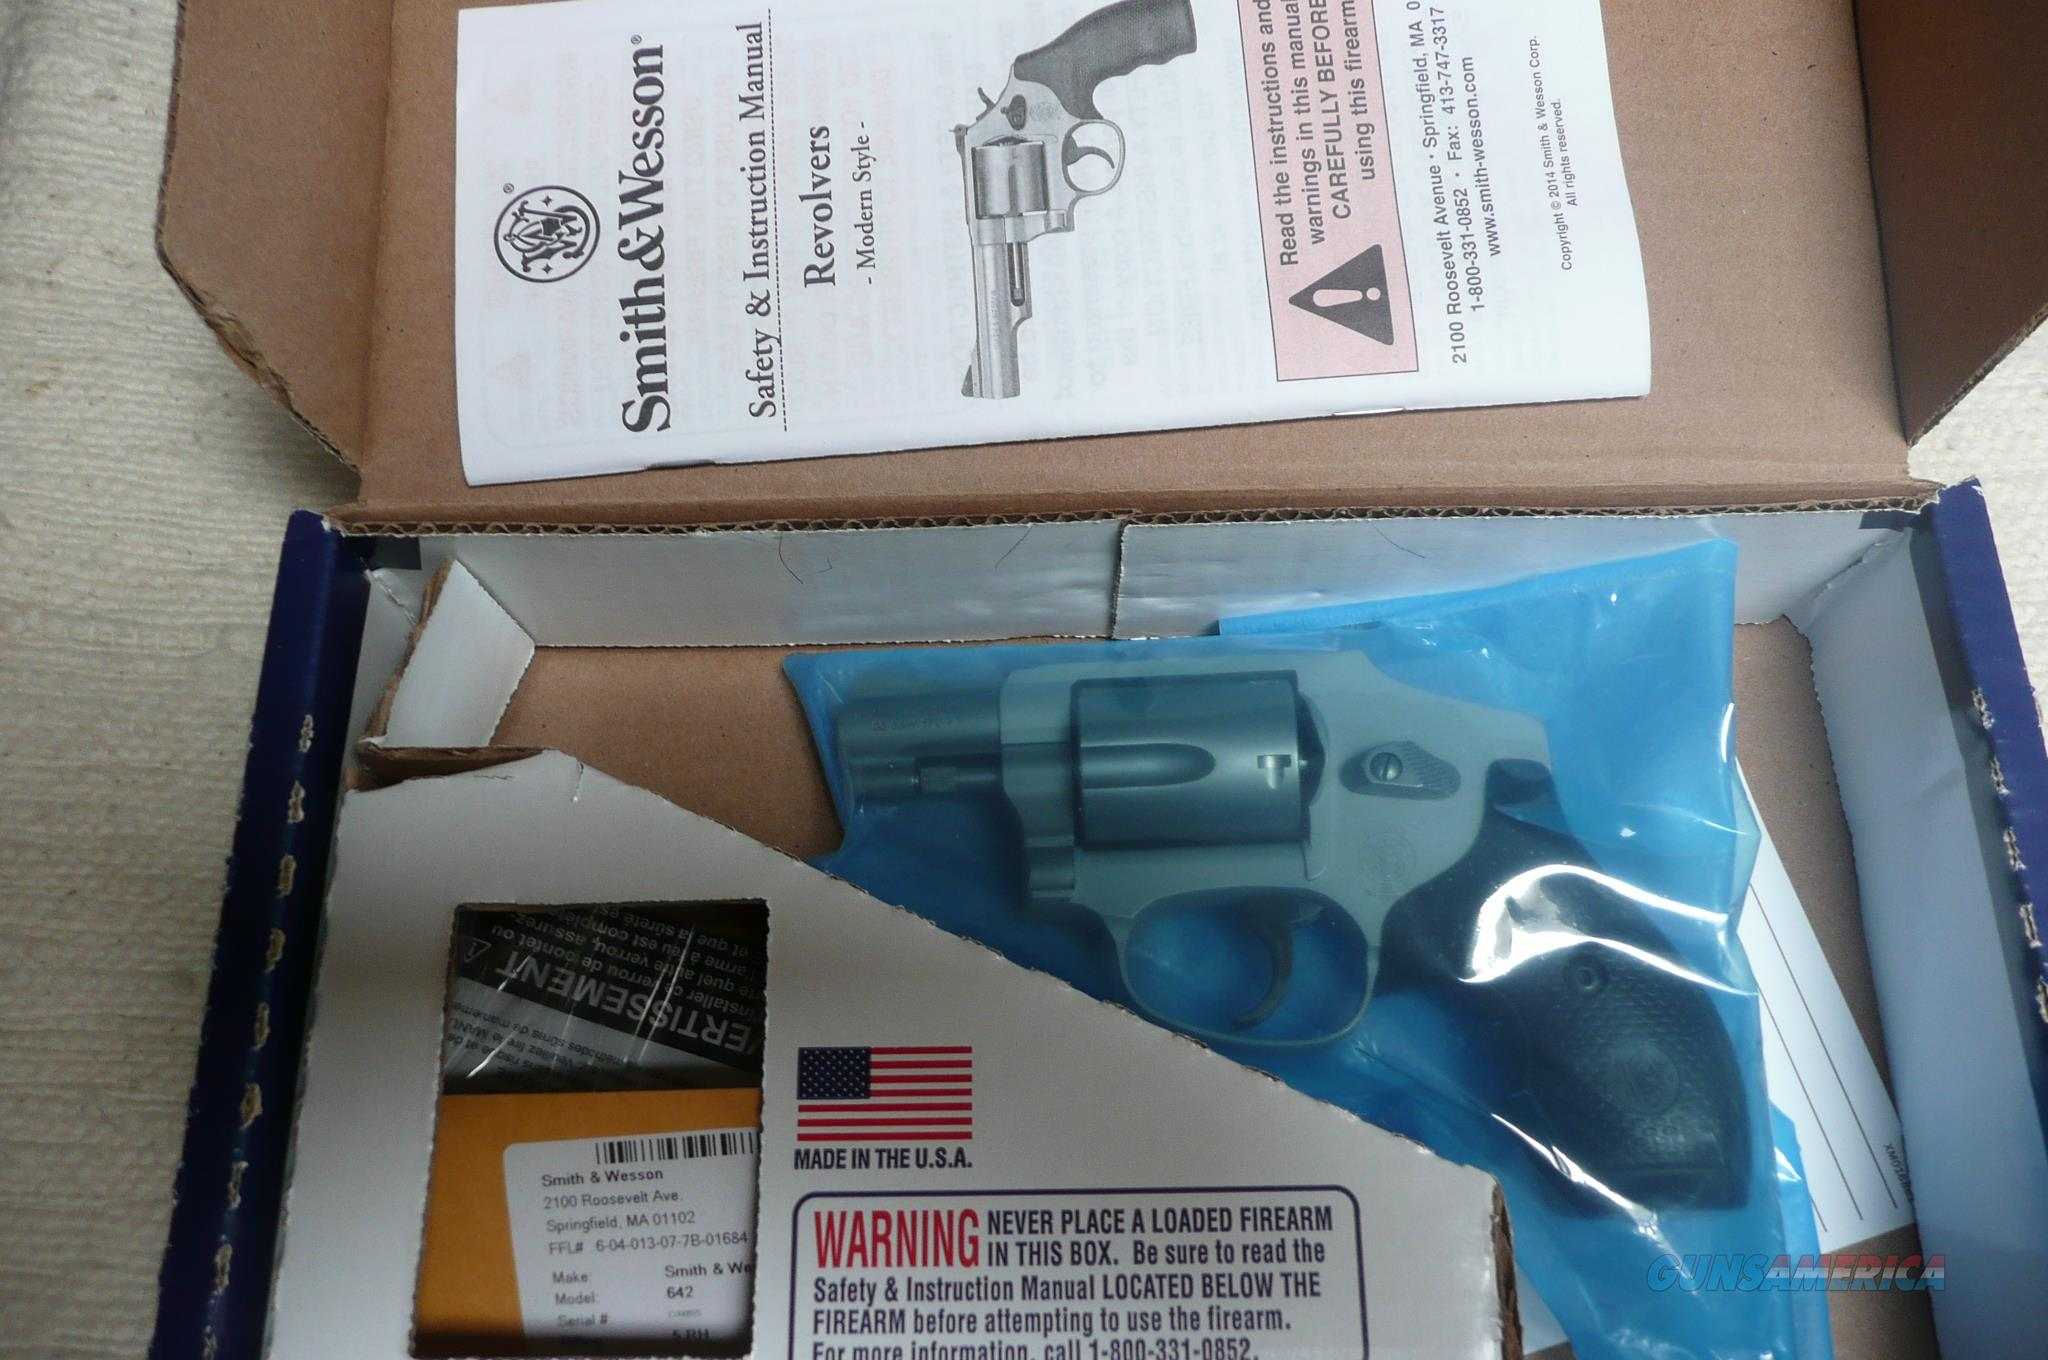 S&W  model 442  Lightweight  5 rd  Stainless steel   NIB  Guns > Pistols > Smith & Wesson Revolvers > Small Frame ( J )